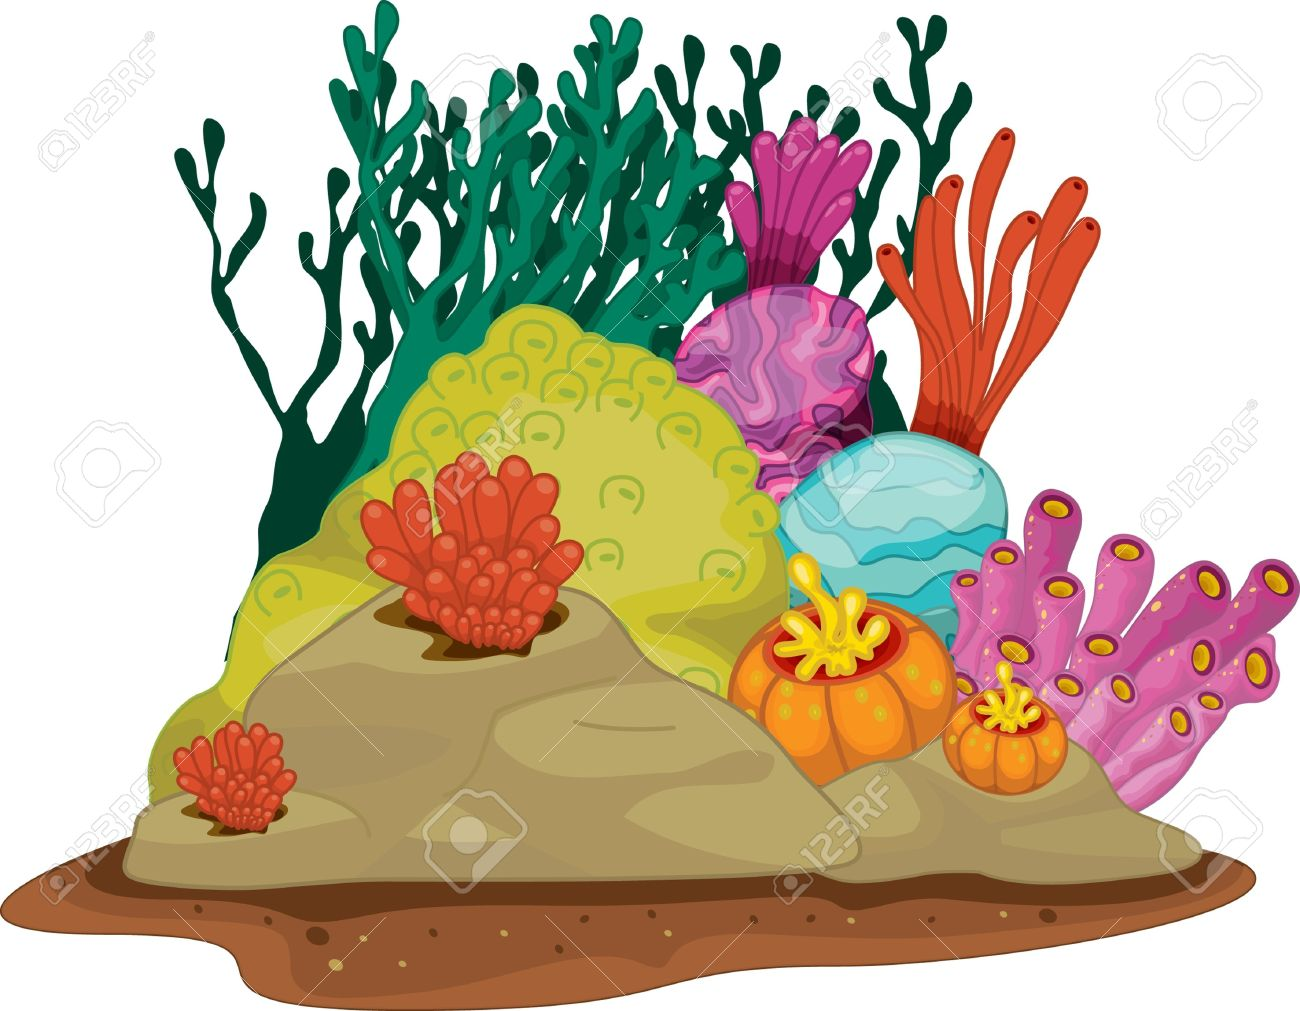 Sea Grass clipart #2, Download drawings